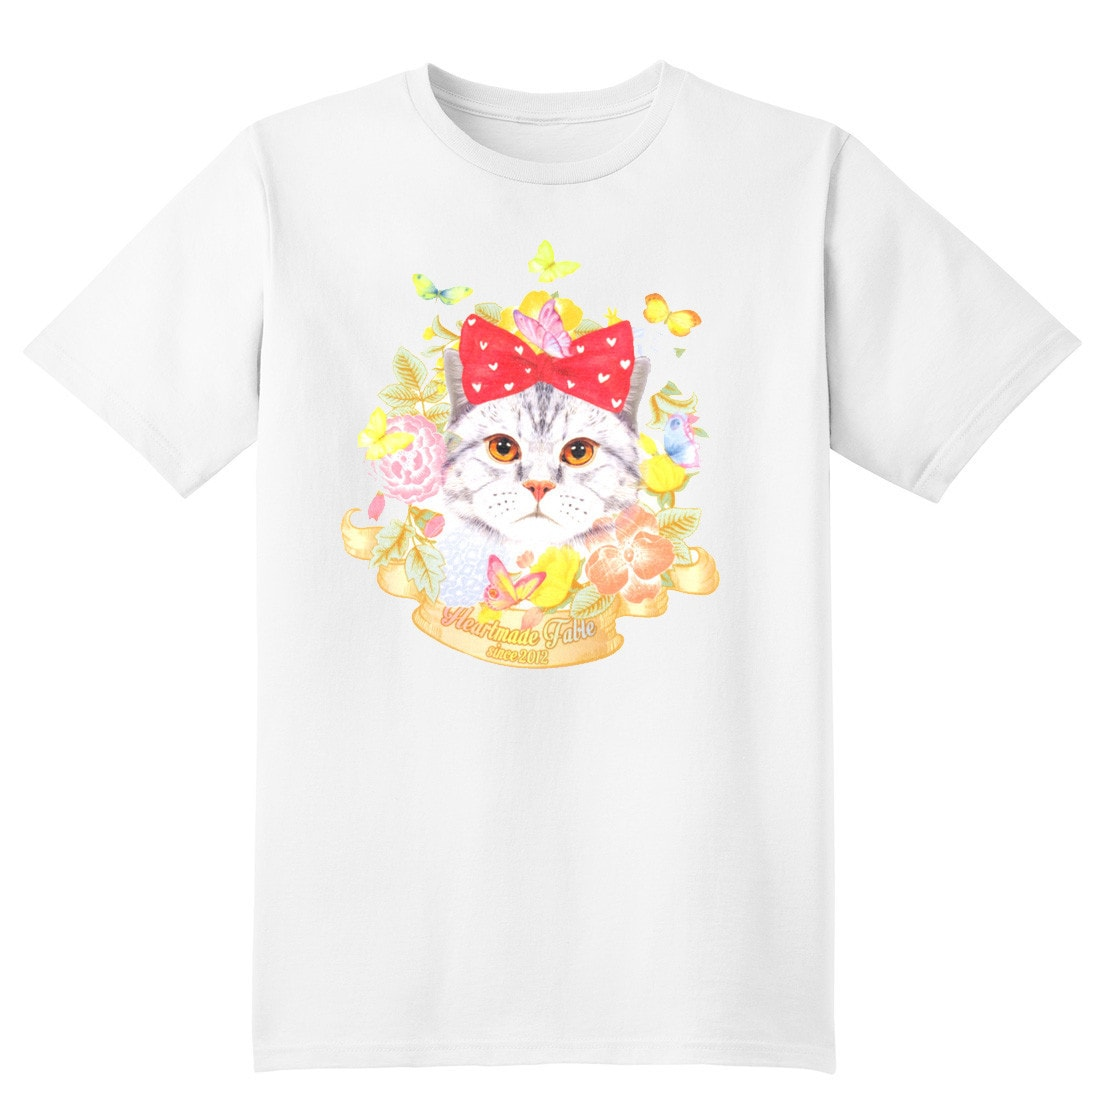 Kitty Cat Surrounded by Flowers and Butterflies Graphic Print Tee